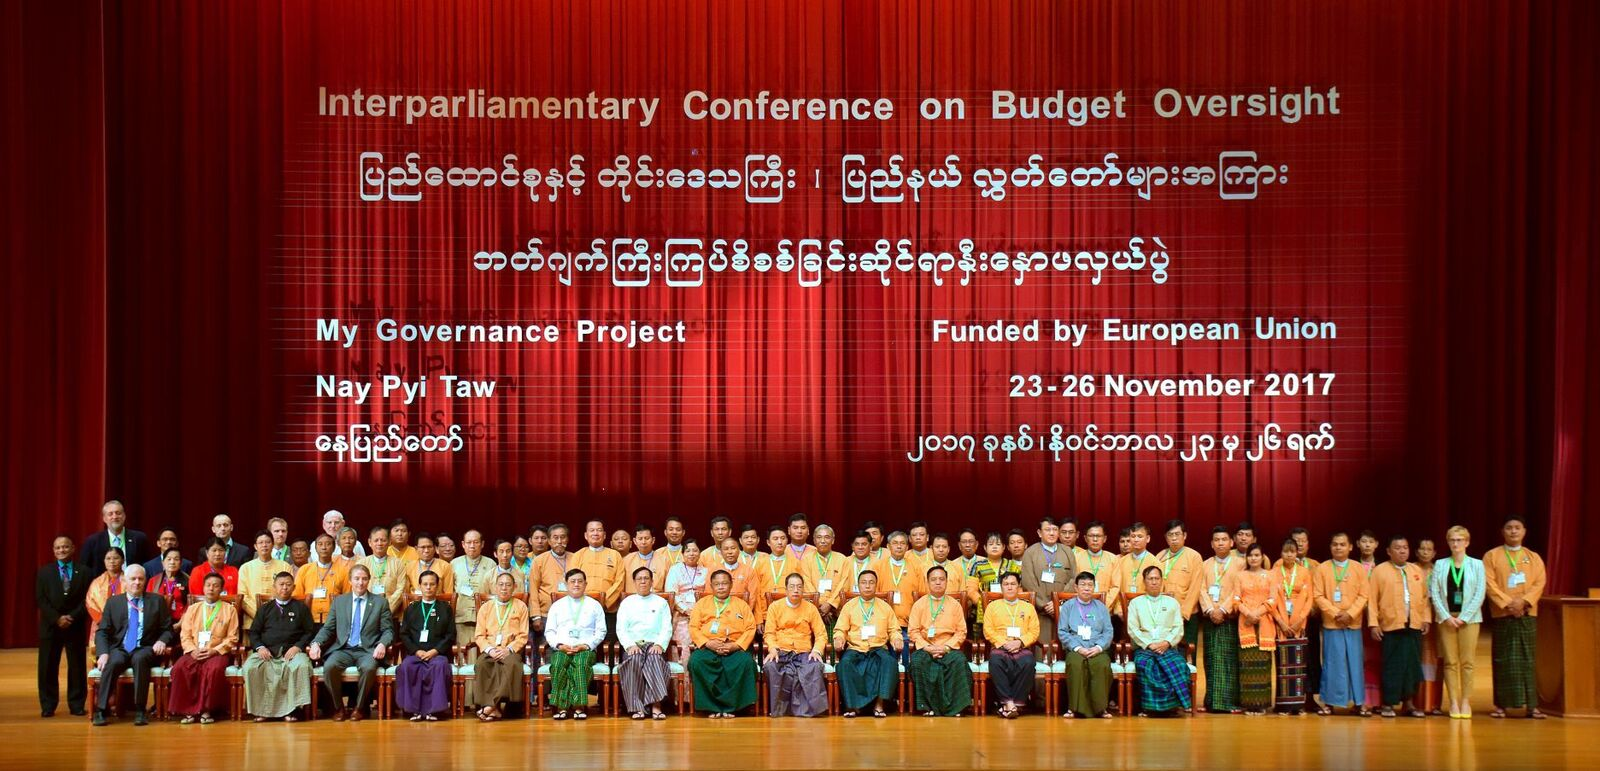 Participants of the first Inter-Parliamentary Conference on Budget Oversight, Nay Pyi Taw, 23–26 November 2017. Photo credit: Wine Gyi.